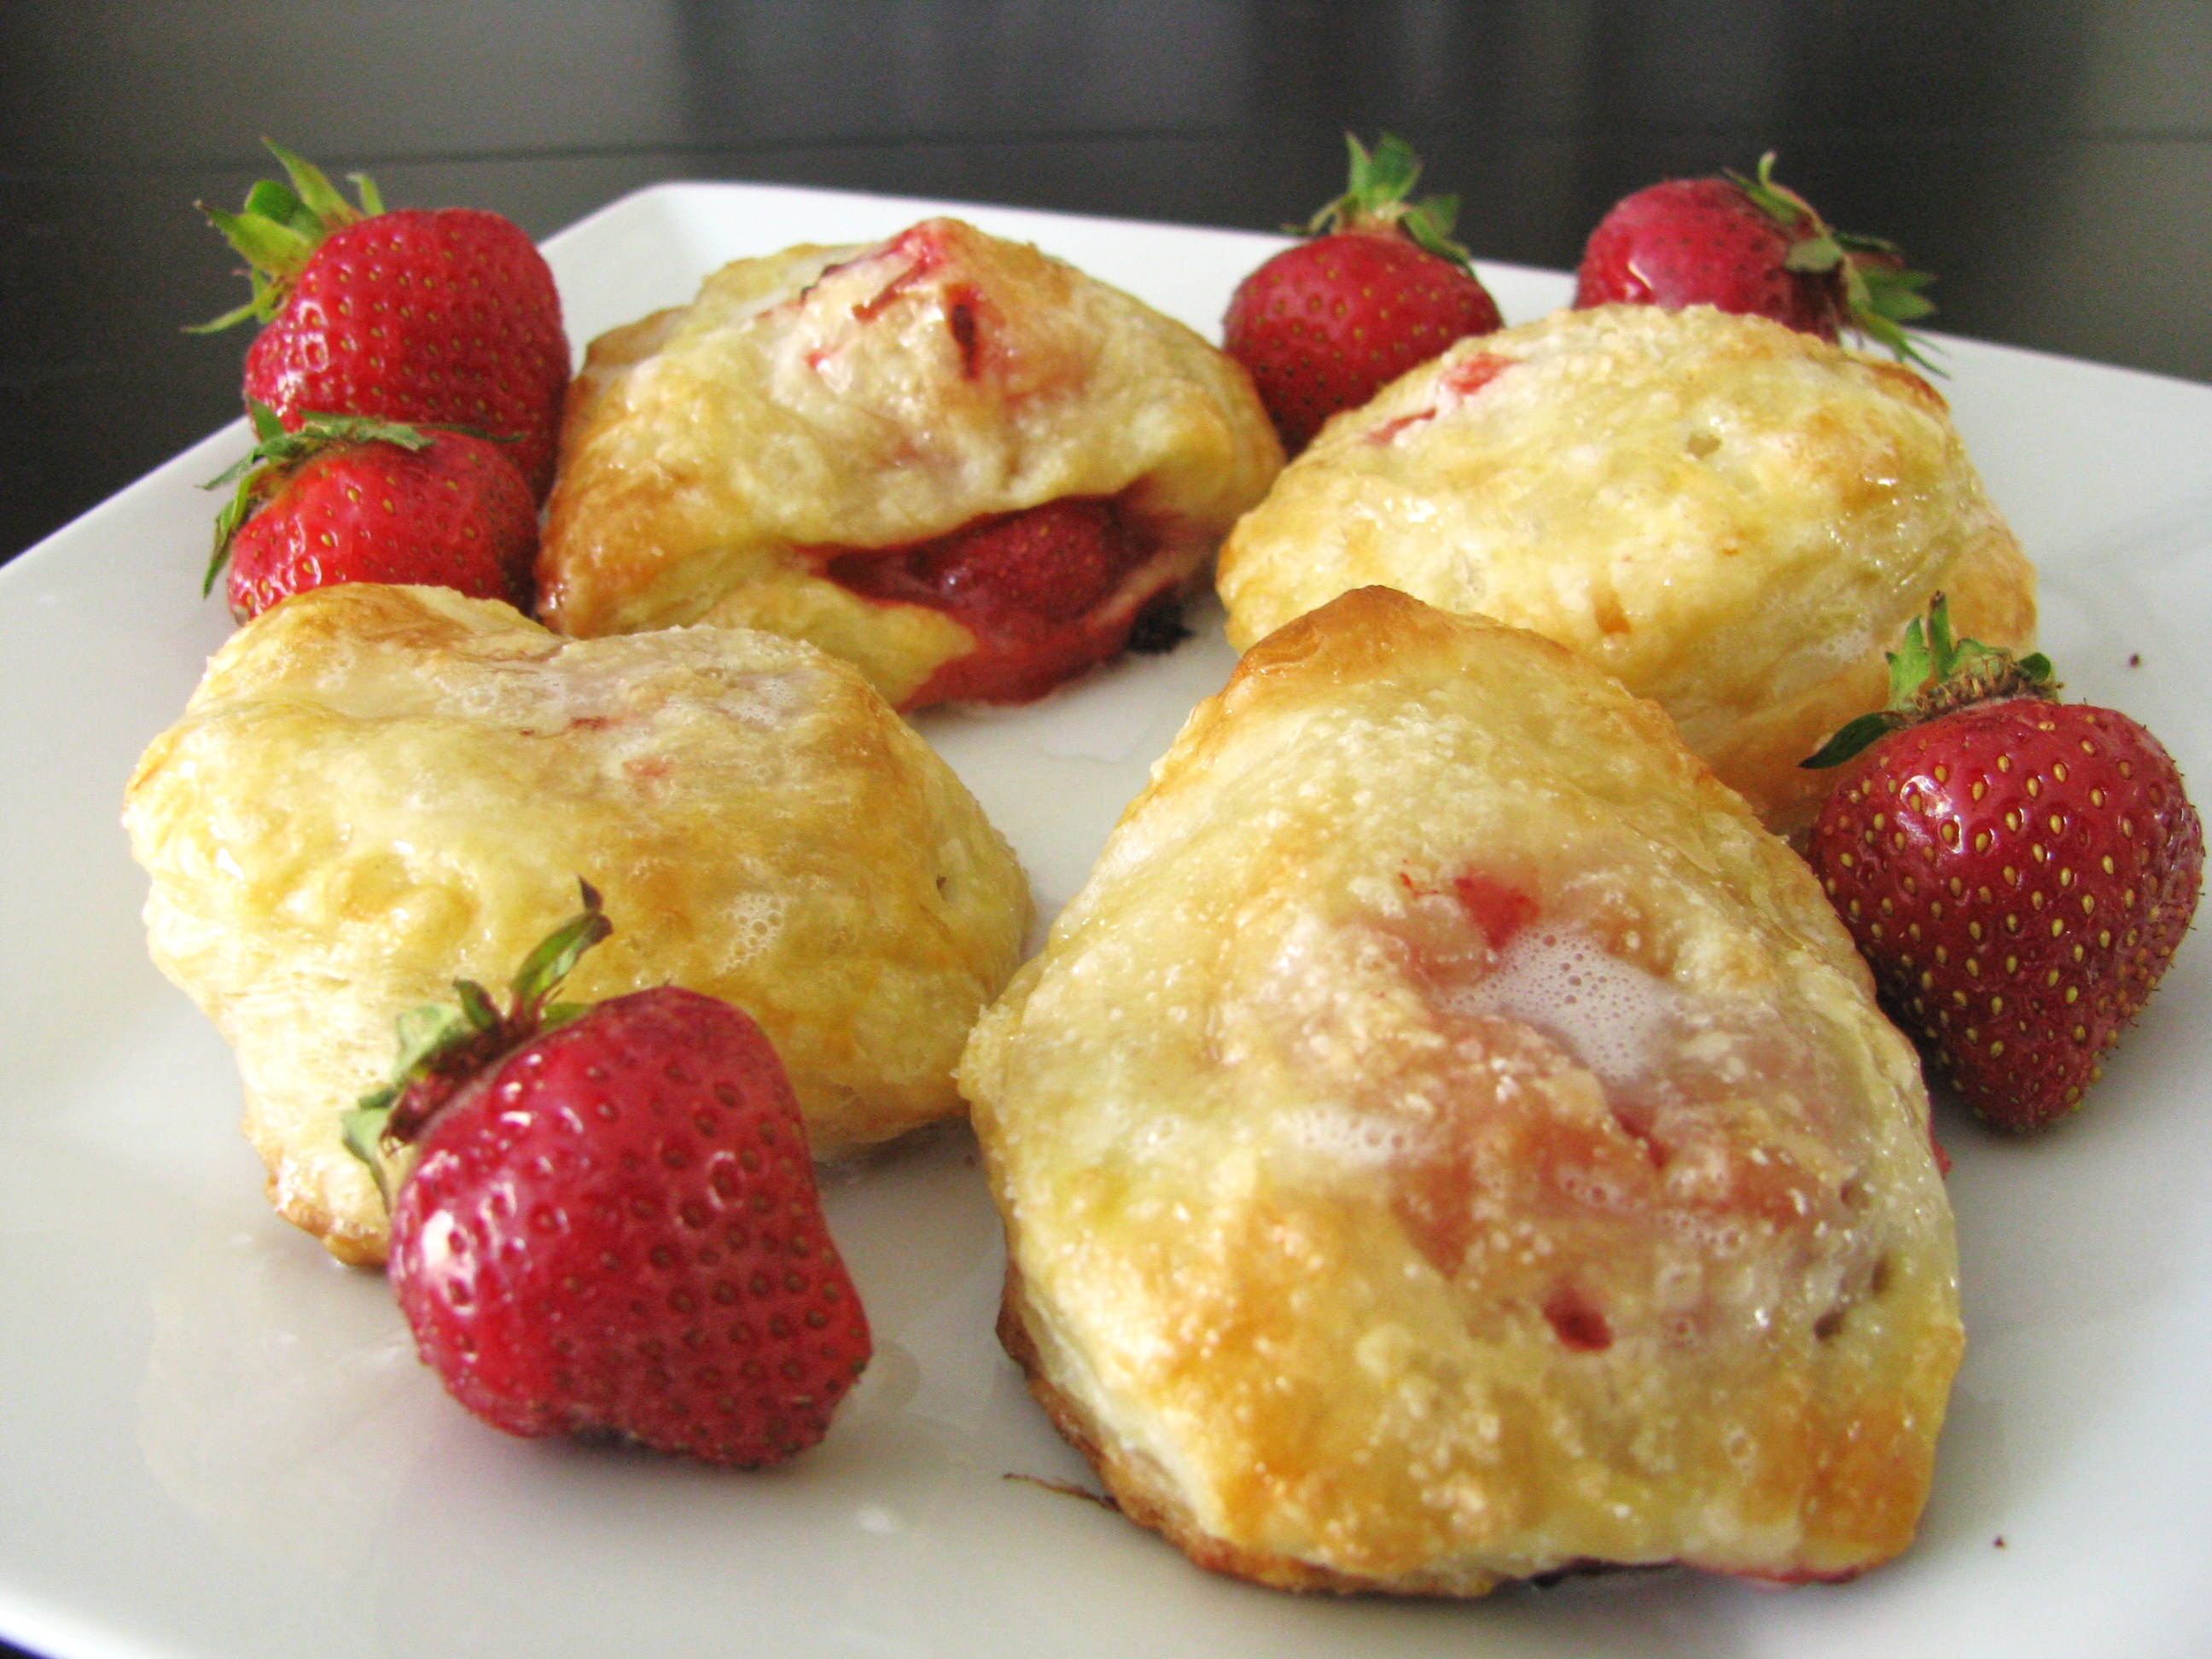 strawberry banana pastry